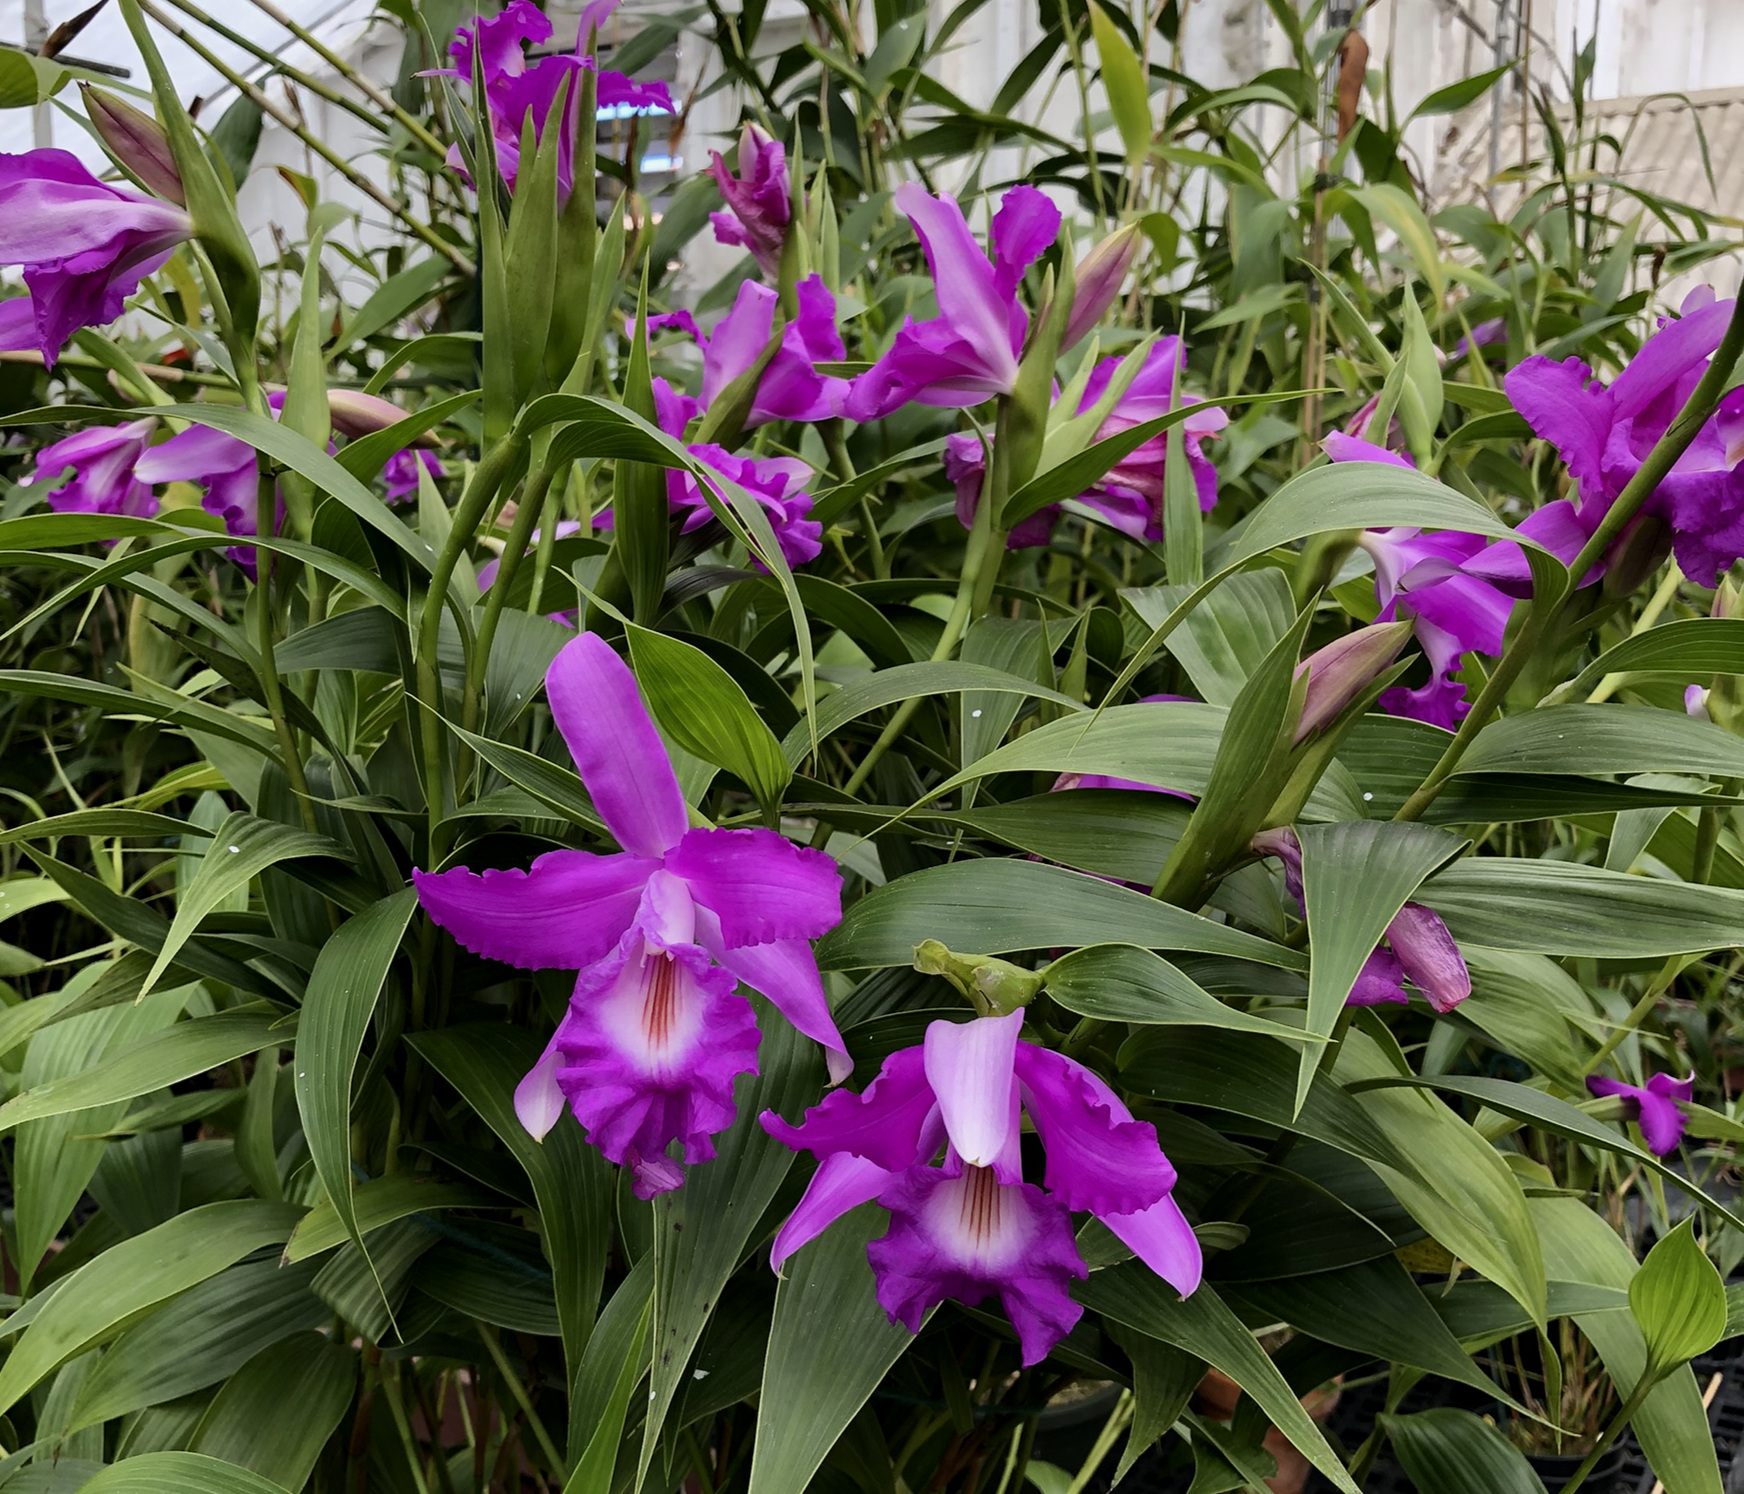 Sobralia maduroi  hybrid by Bruce Rogers. Exceptional, multifloral modern hybrid with enchanting fragrance of Coppertone suntan oil! Author's image, June 2019.